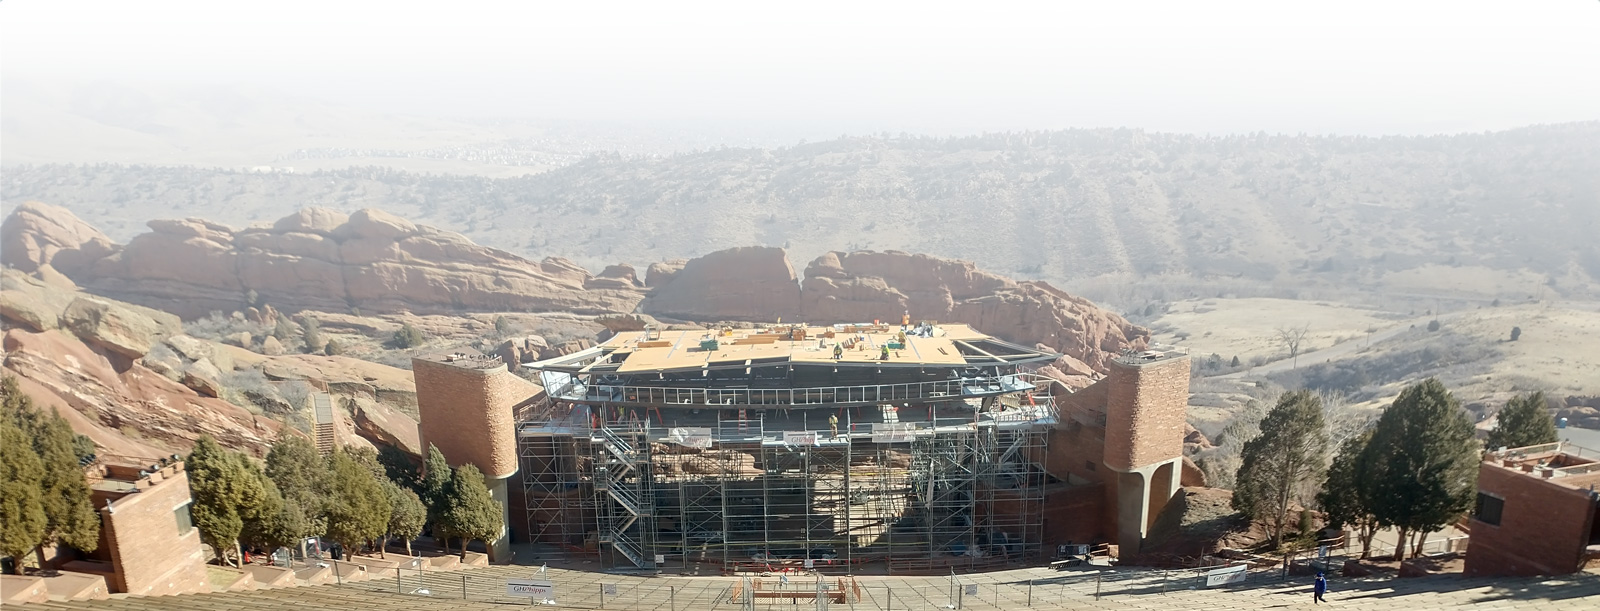 Red Rocks Construction Site